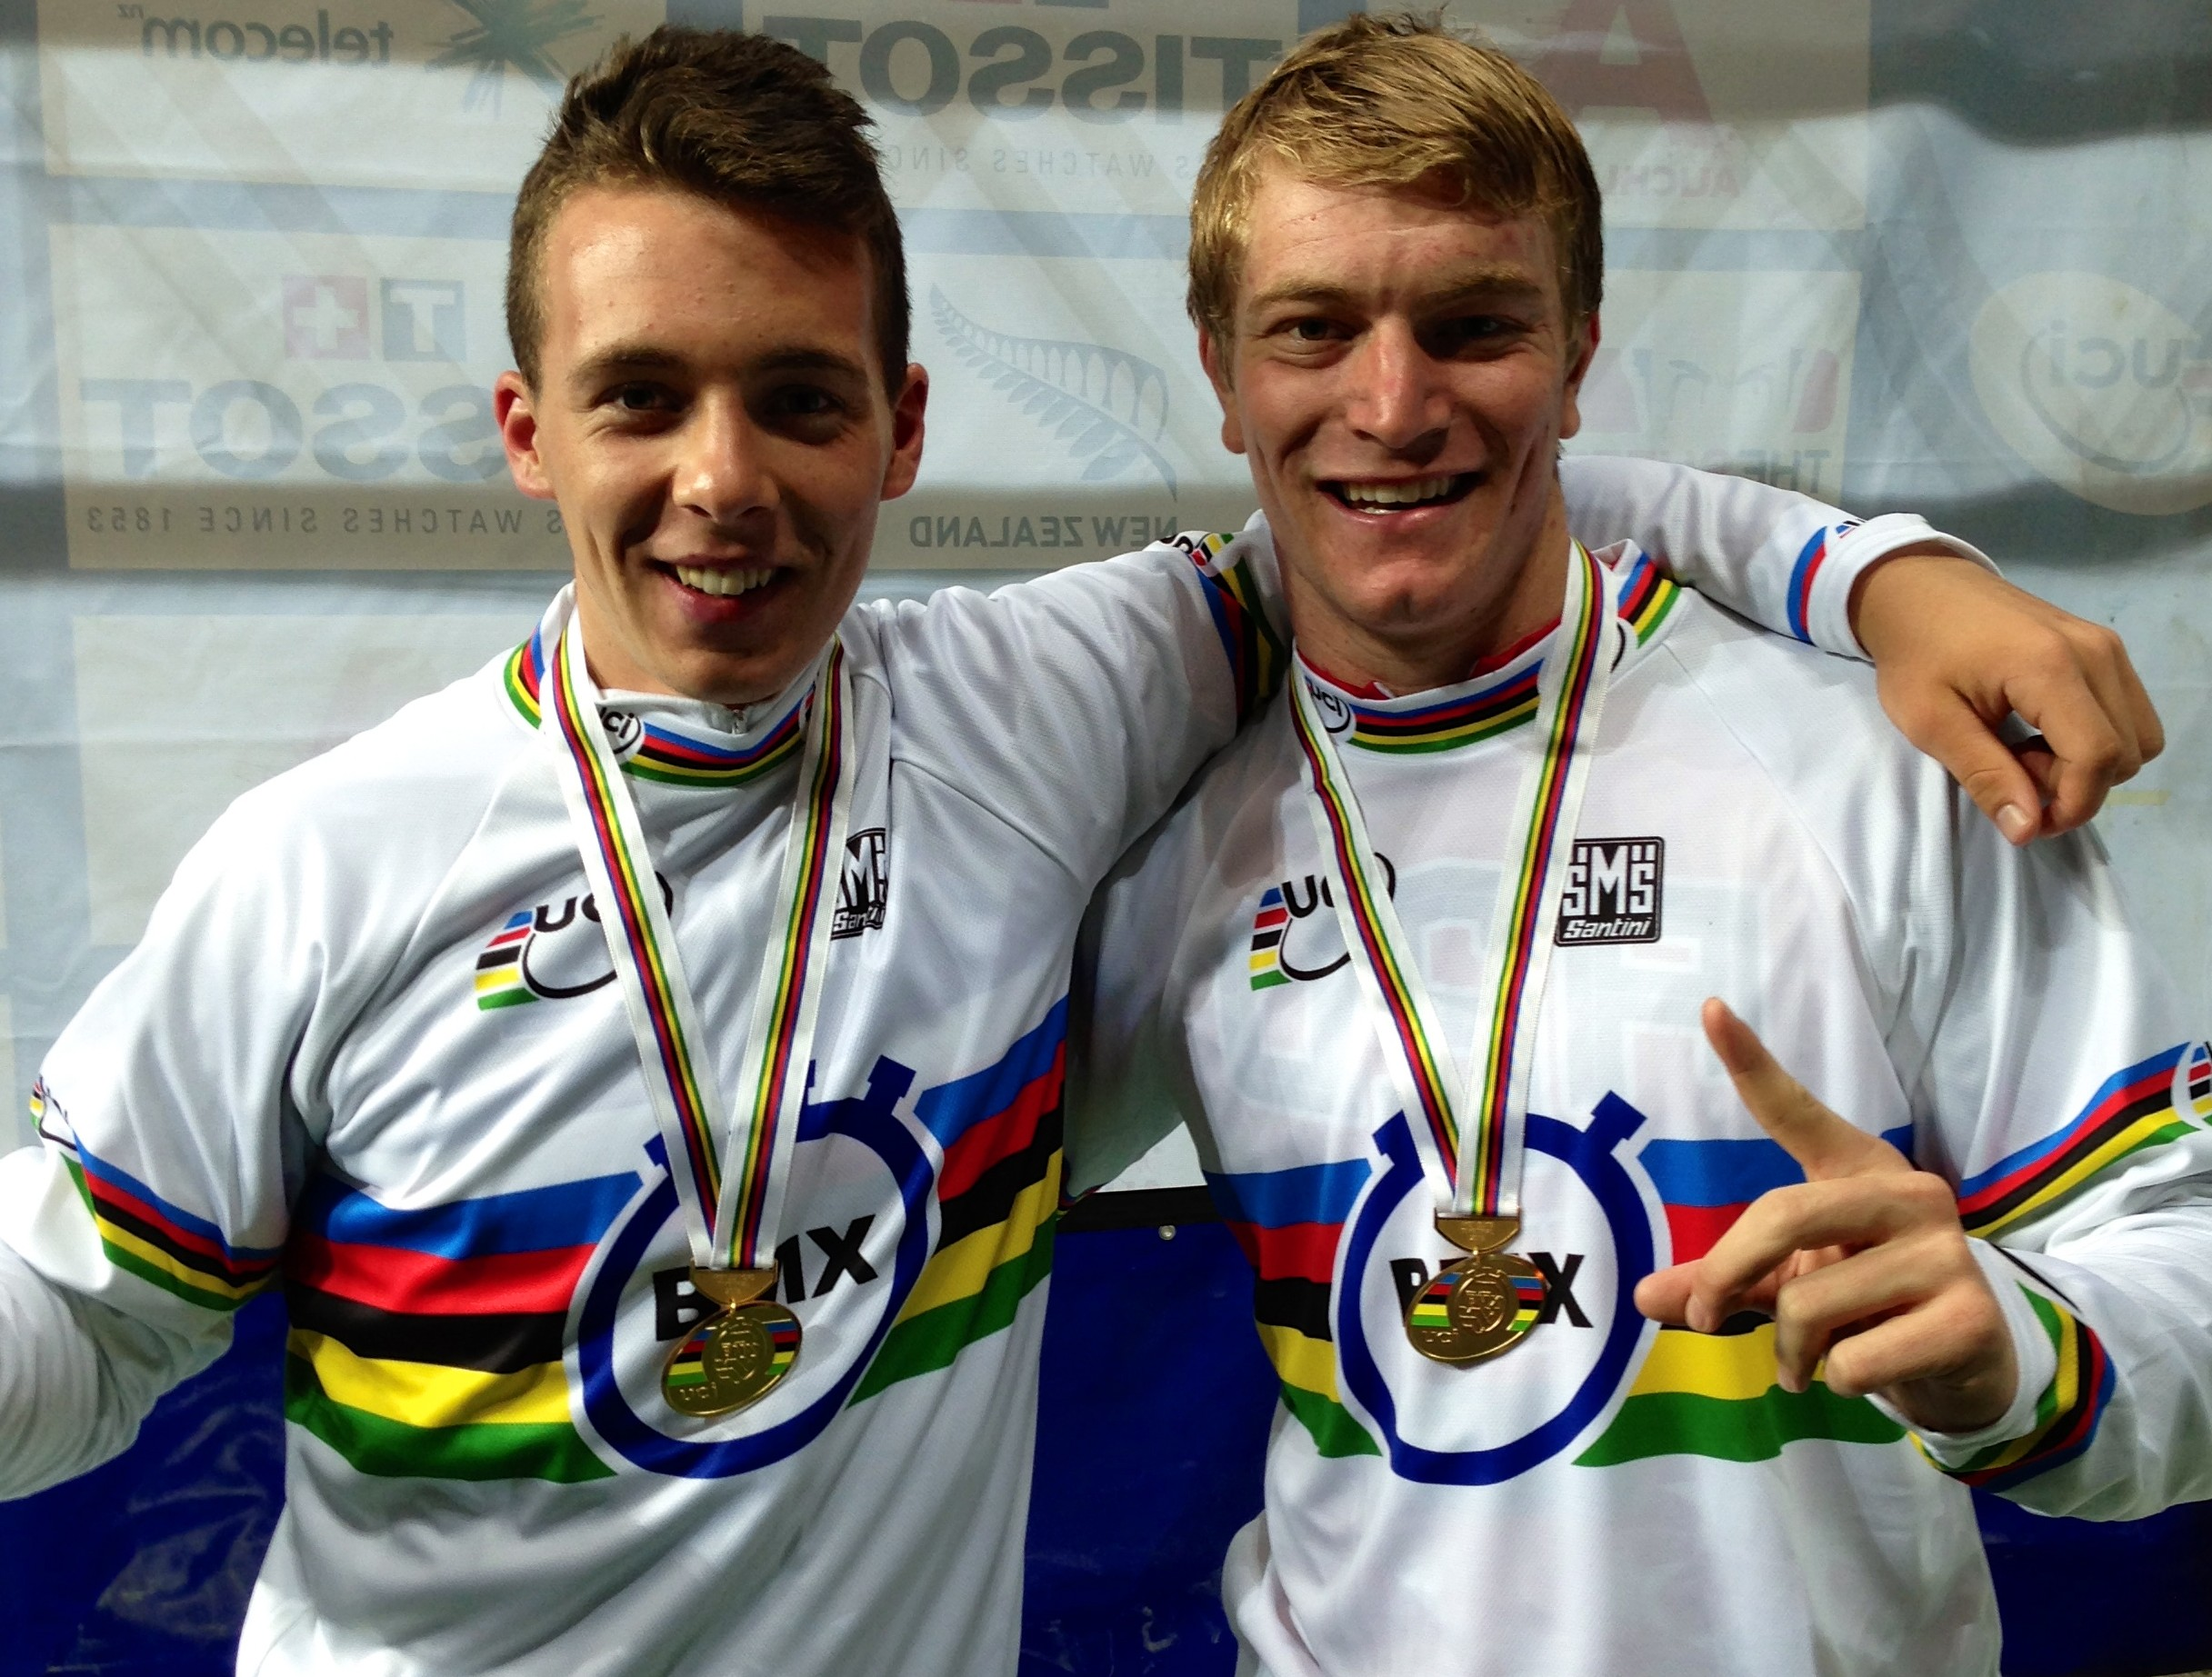 Connor Fields and Romain Mahieu win UCI BMX World Championships